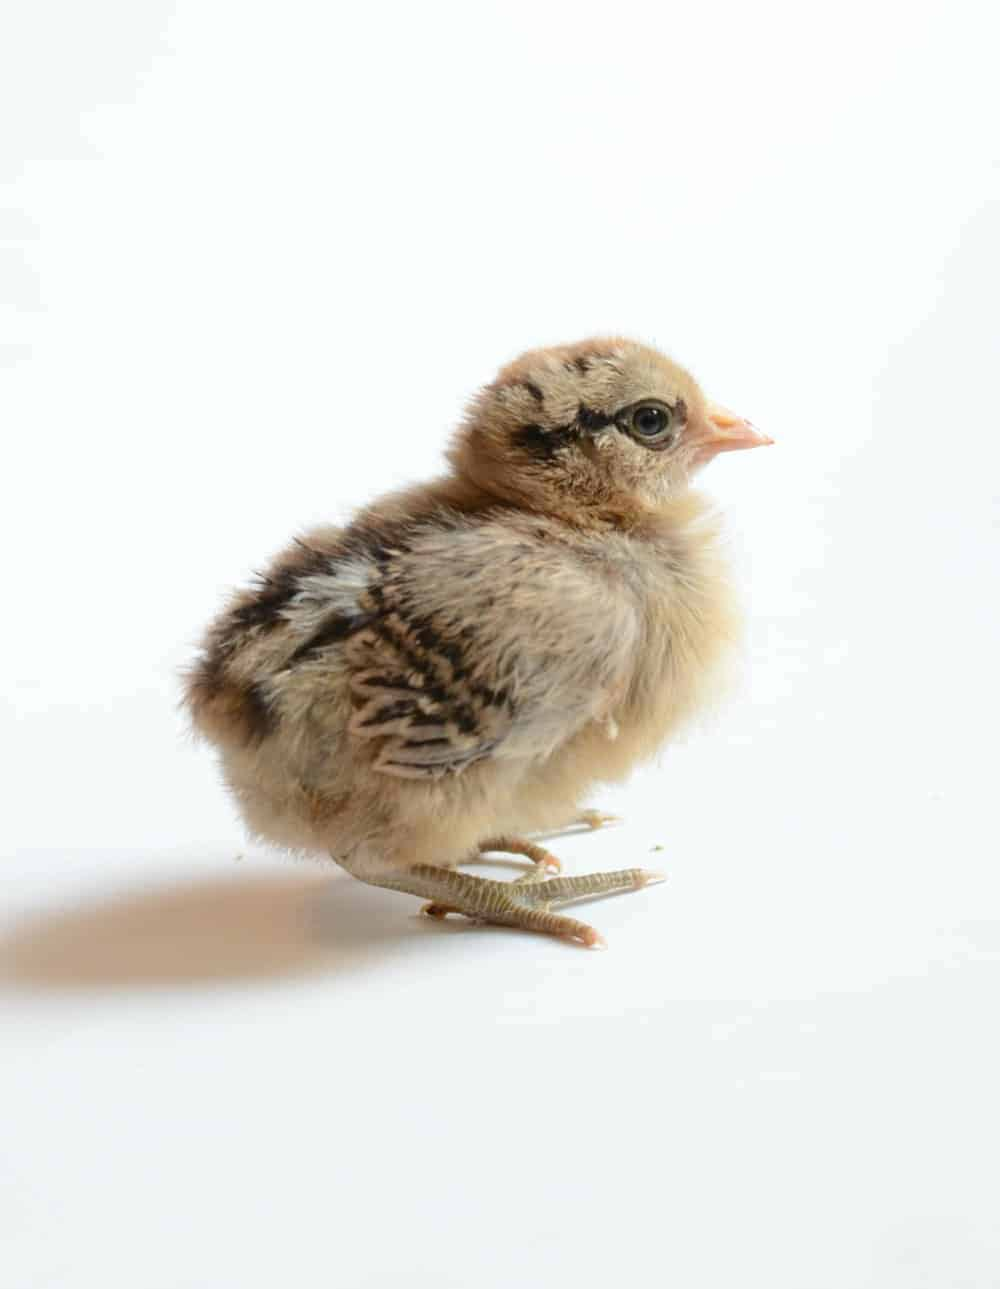 Things to know before bringing chicks home such as what is pasty butt, the best heat lamp, and how to raise nice chickens!